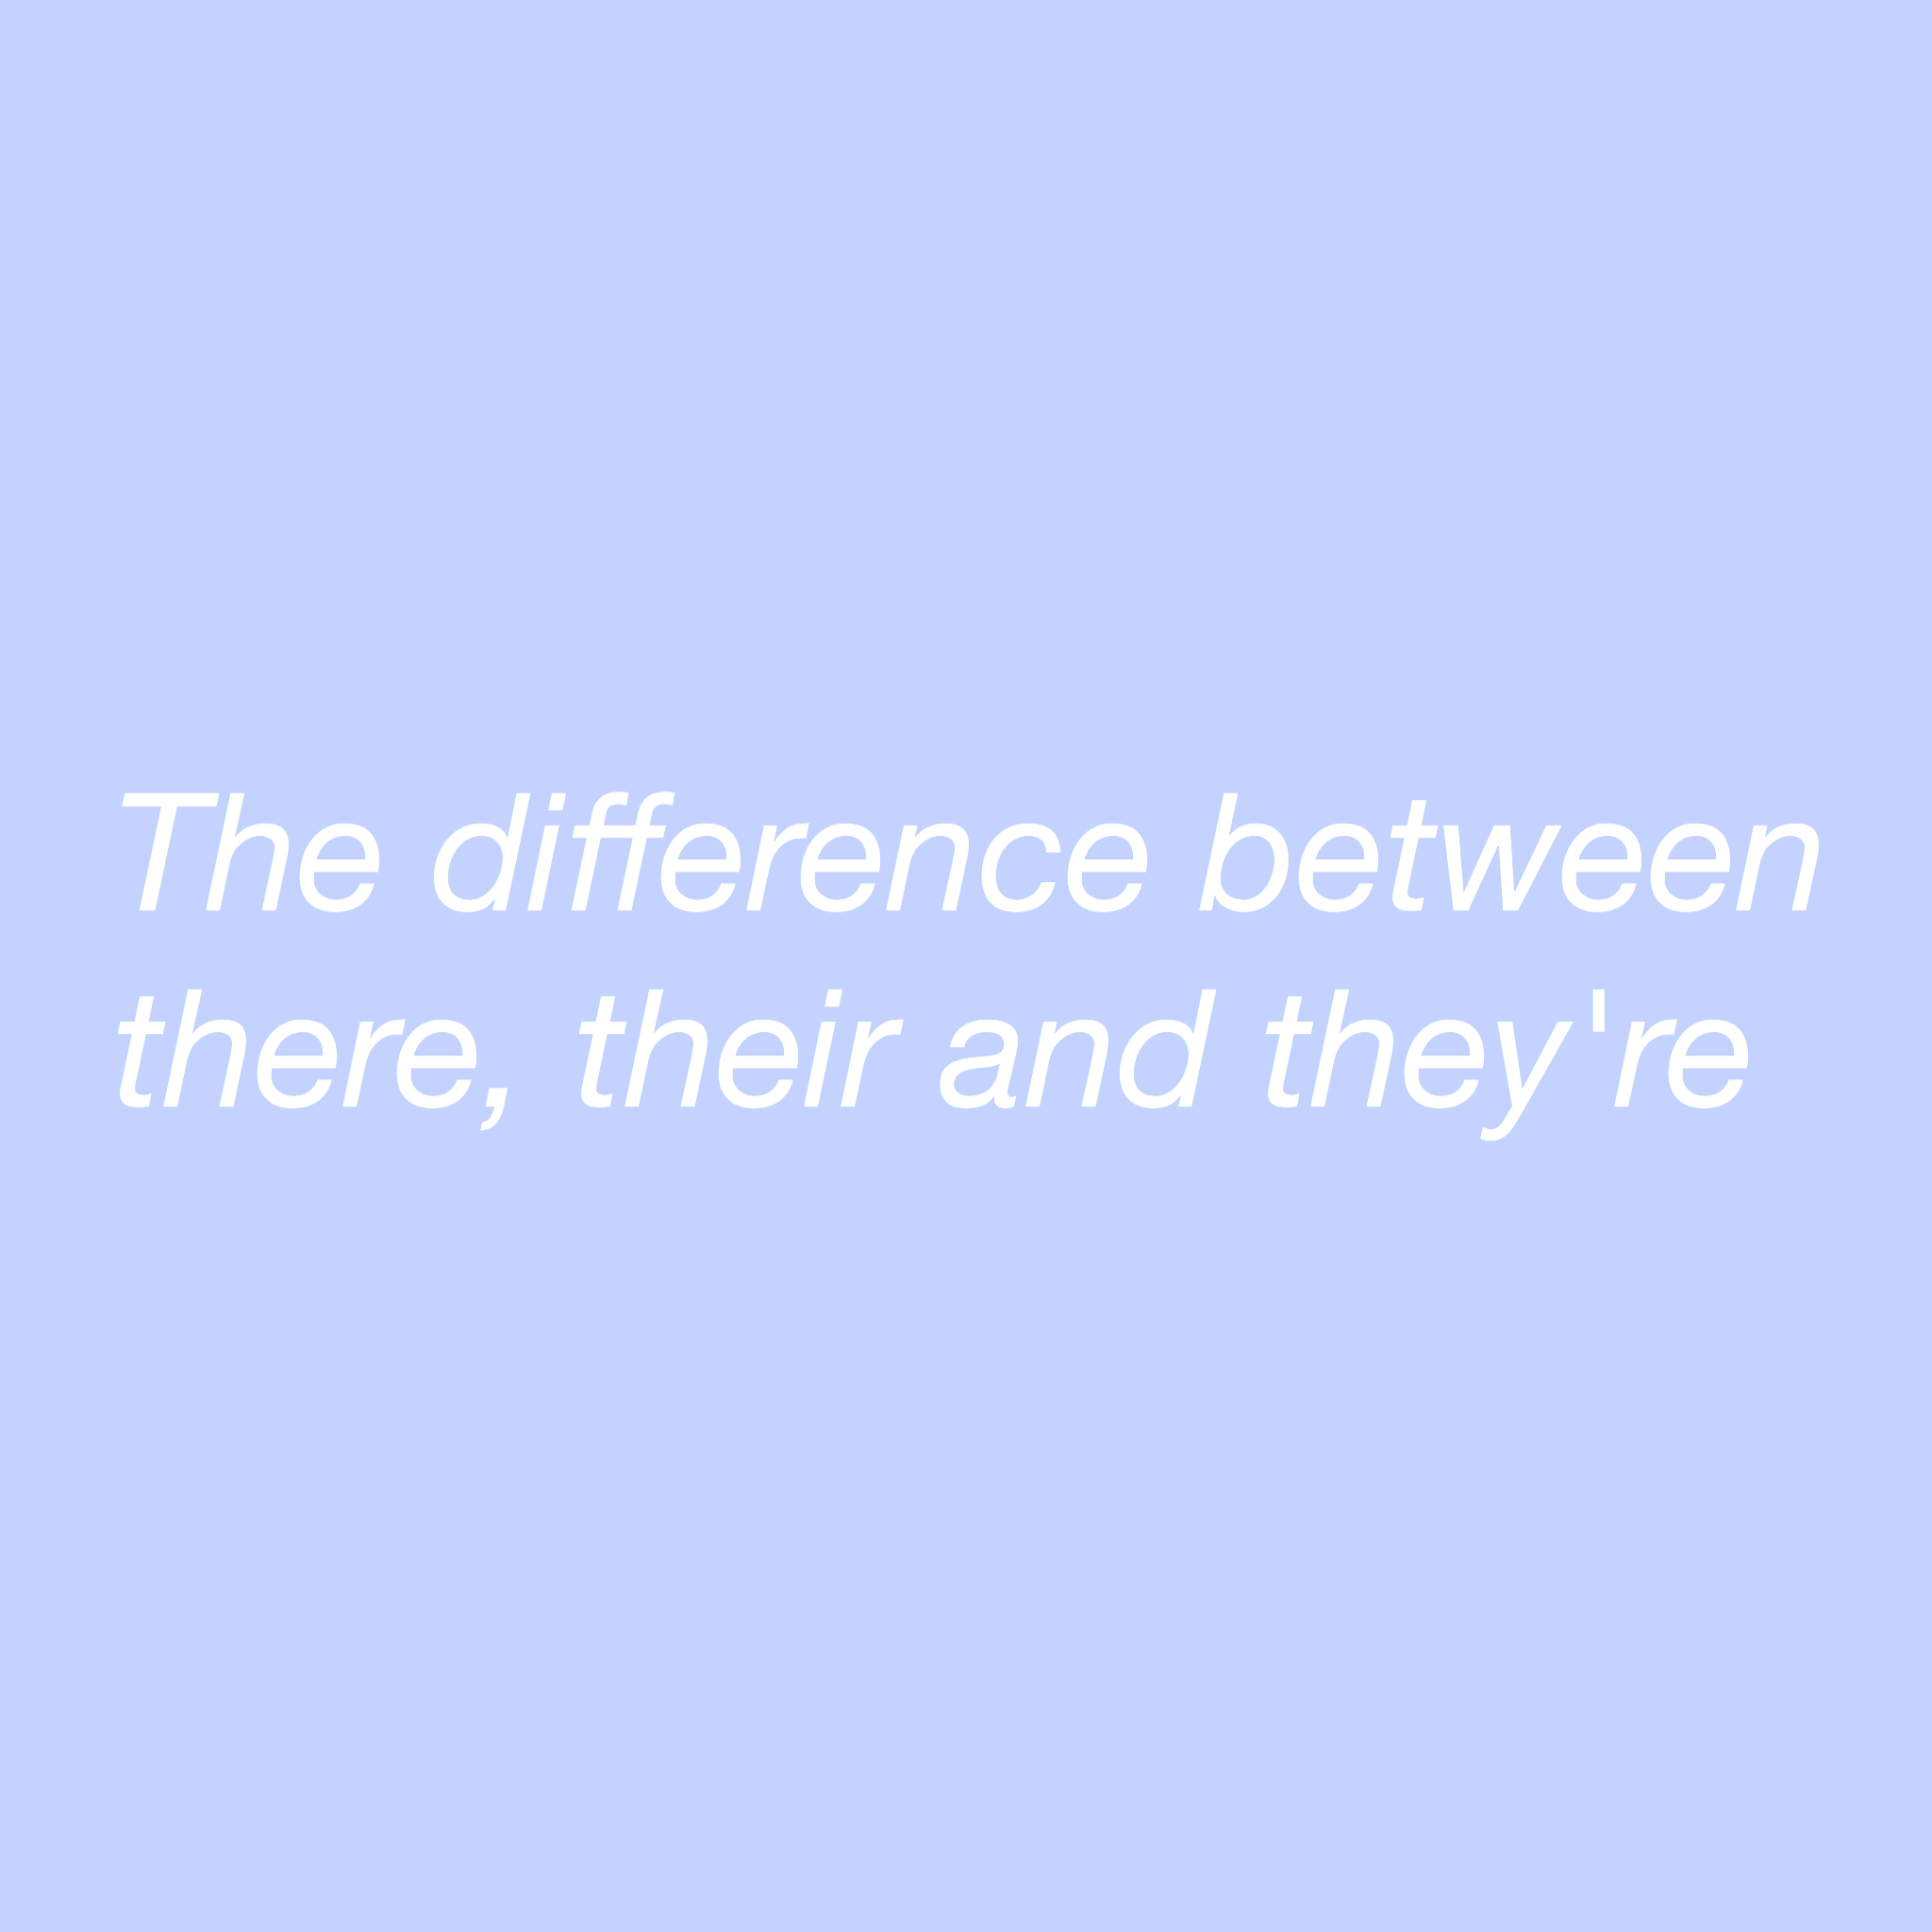 The difference between there, their and they're